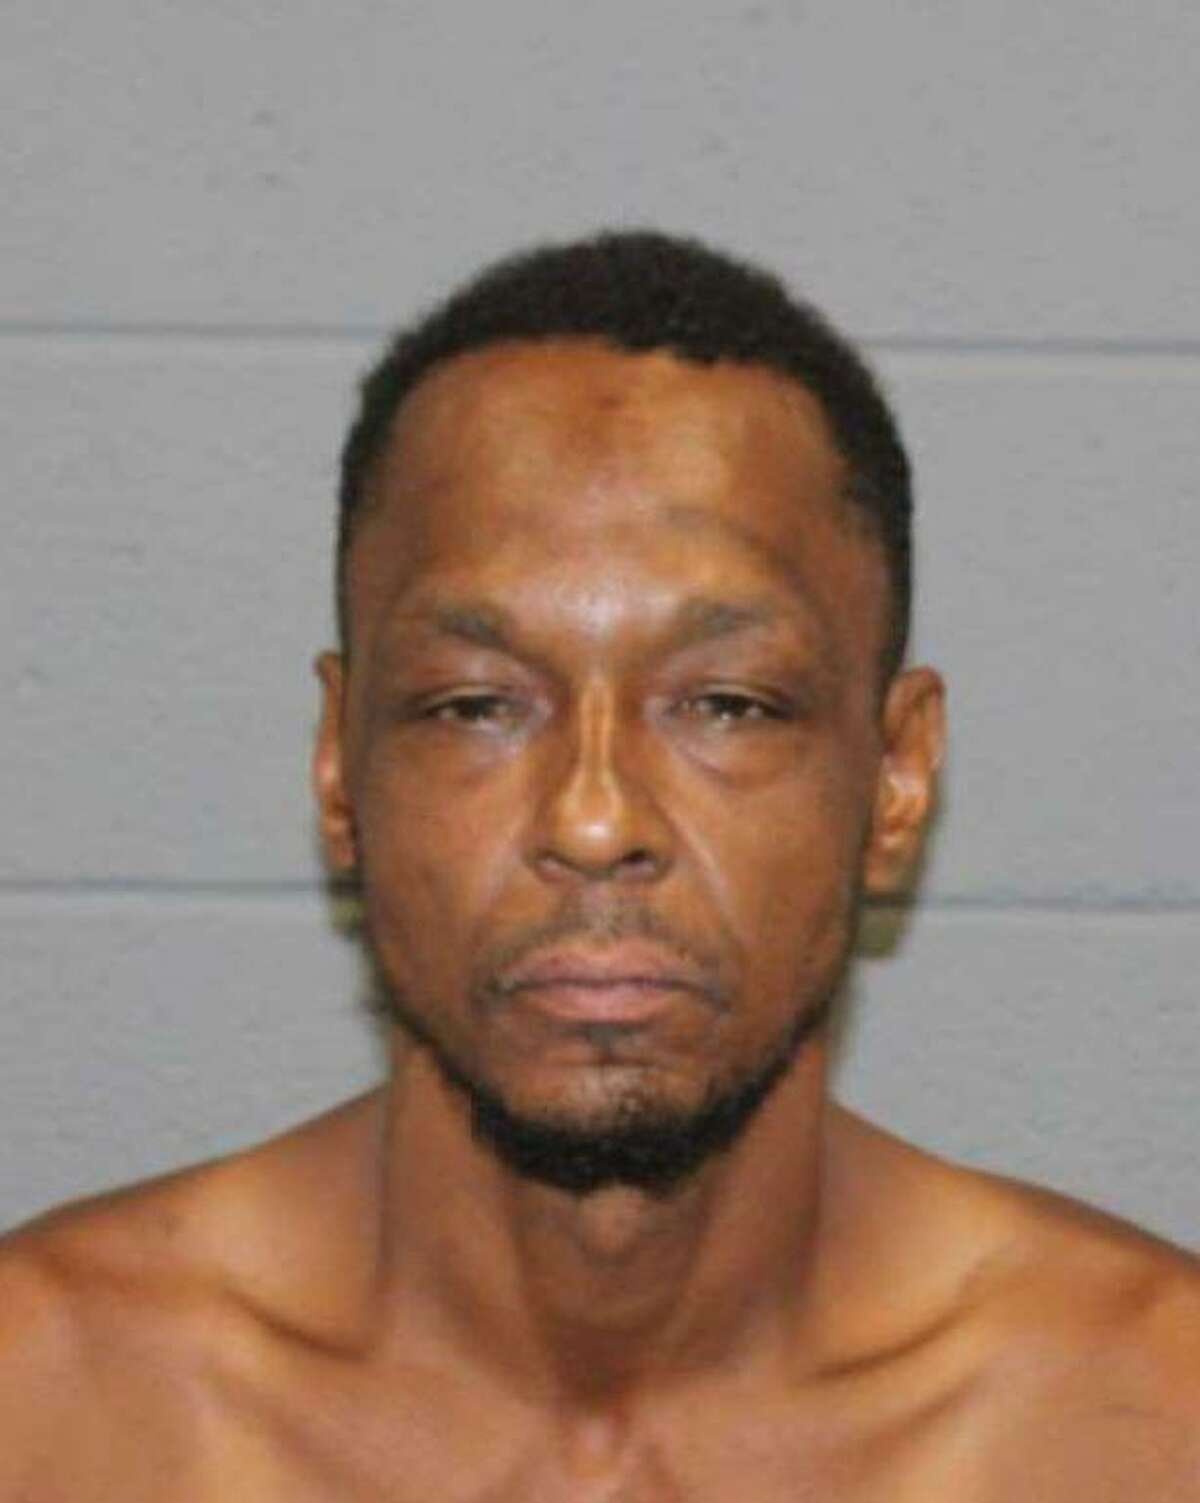 Naugatuck resident Barry mason, 50, was charged Friday after allegedly attempting to evade arrest, according to police.